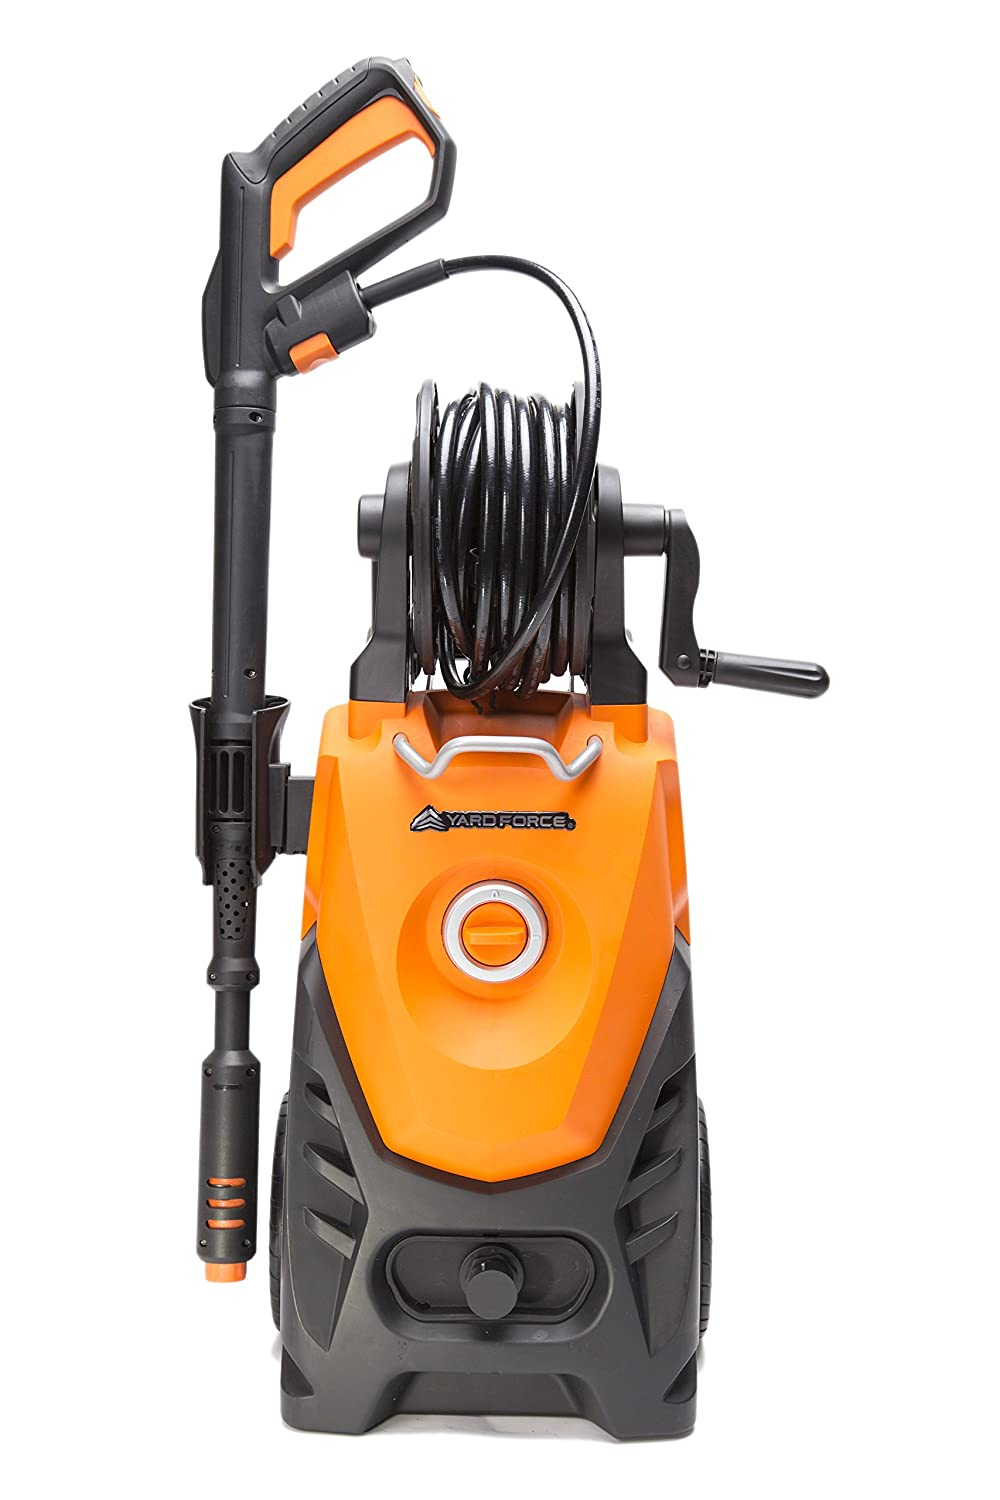 Yard Force 150Bar Heavy-Duty 2000W Pressure Washer EW U15